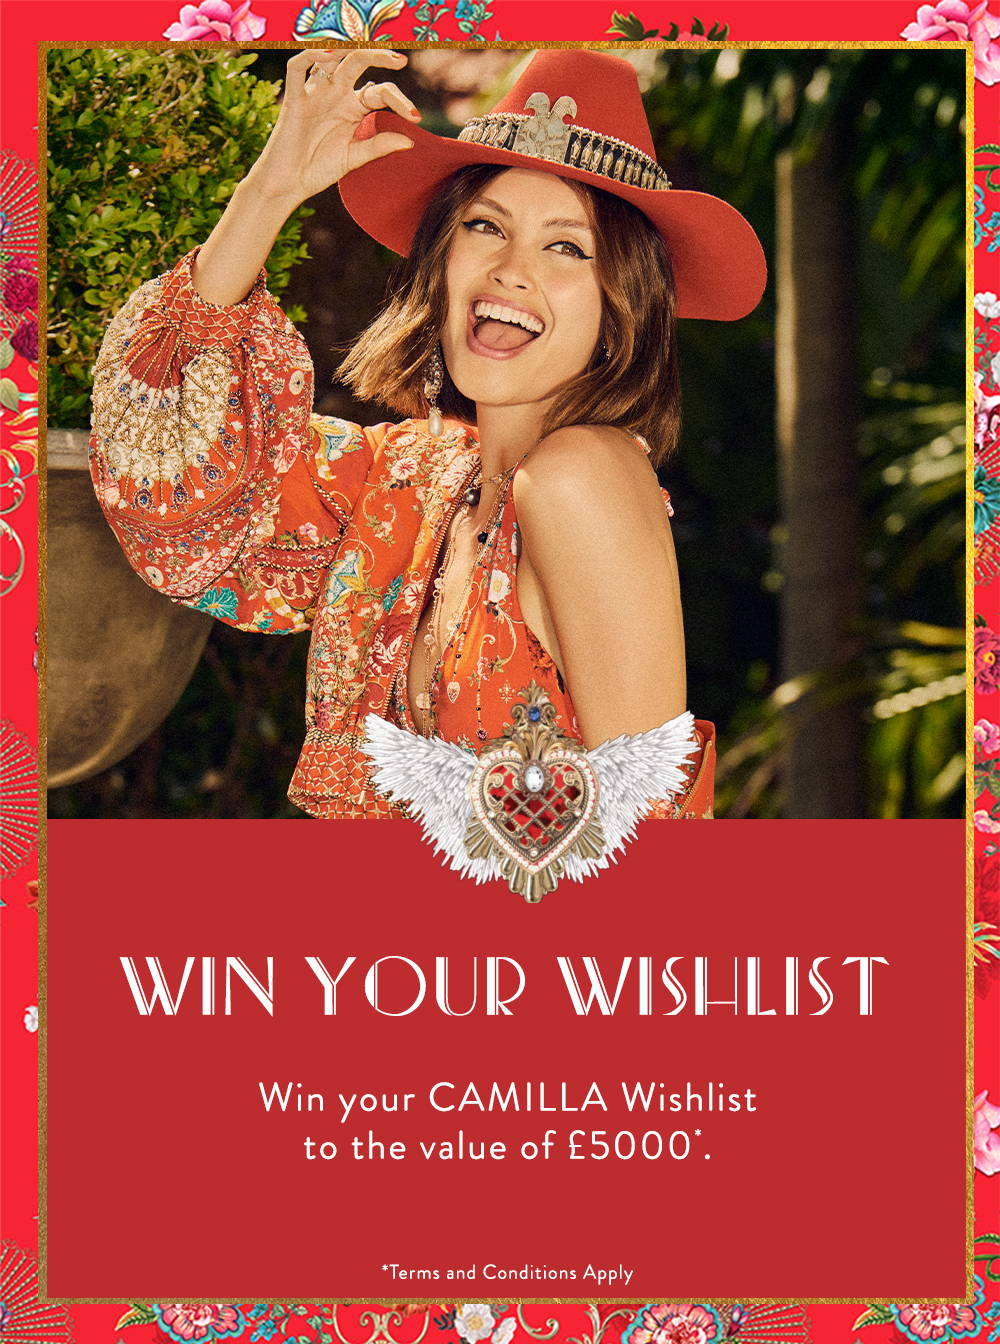 Win Your Wishlist to the value of £5000